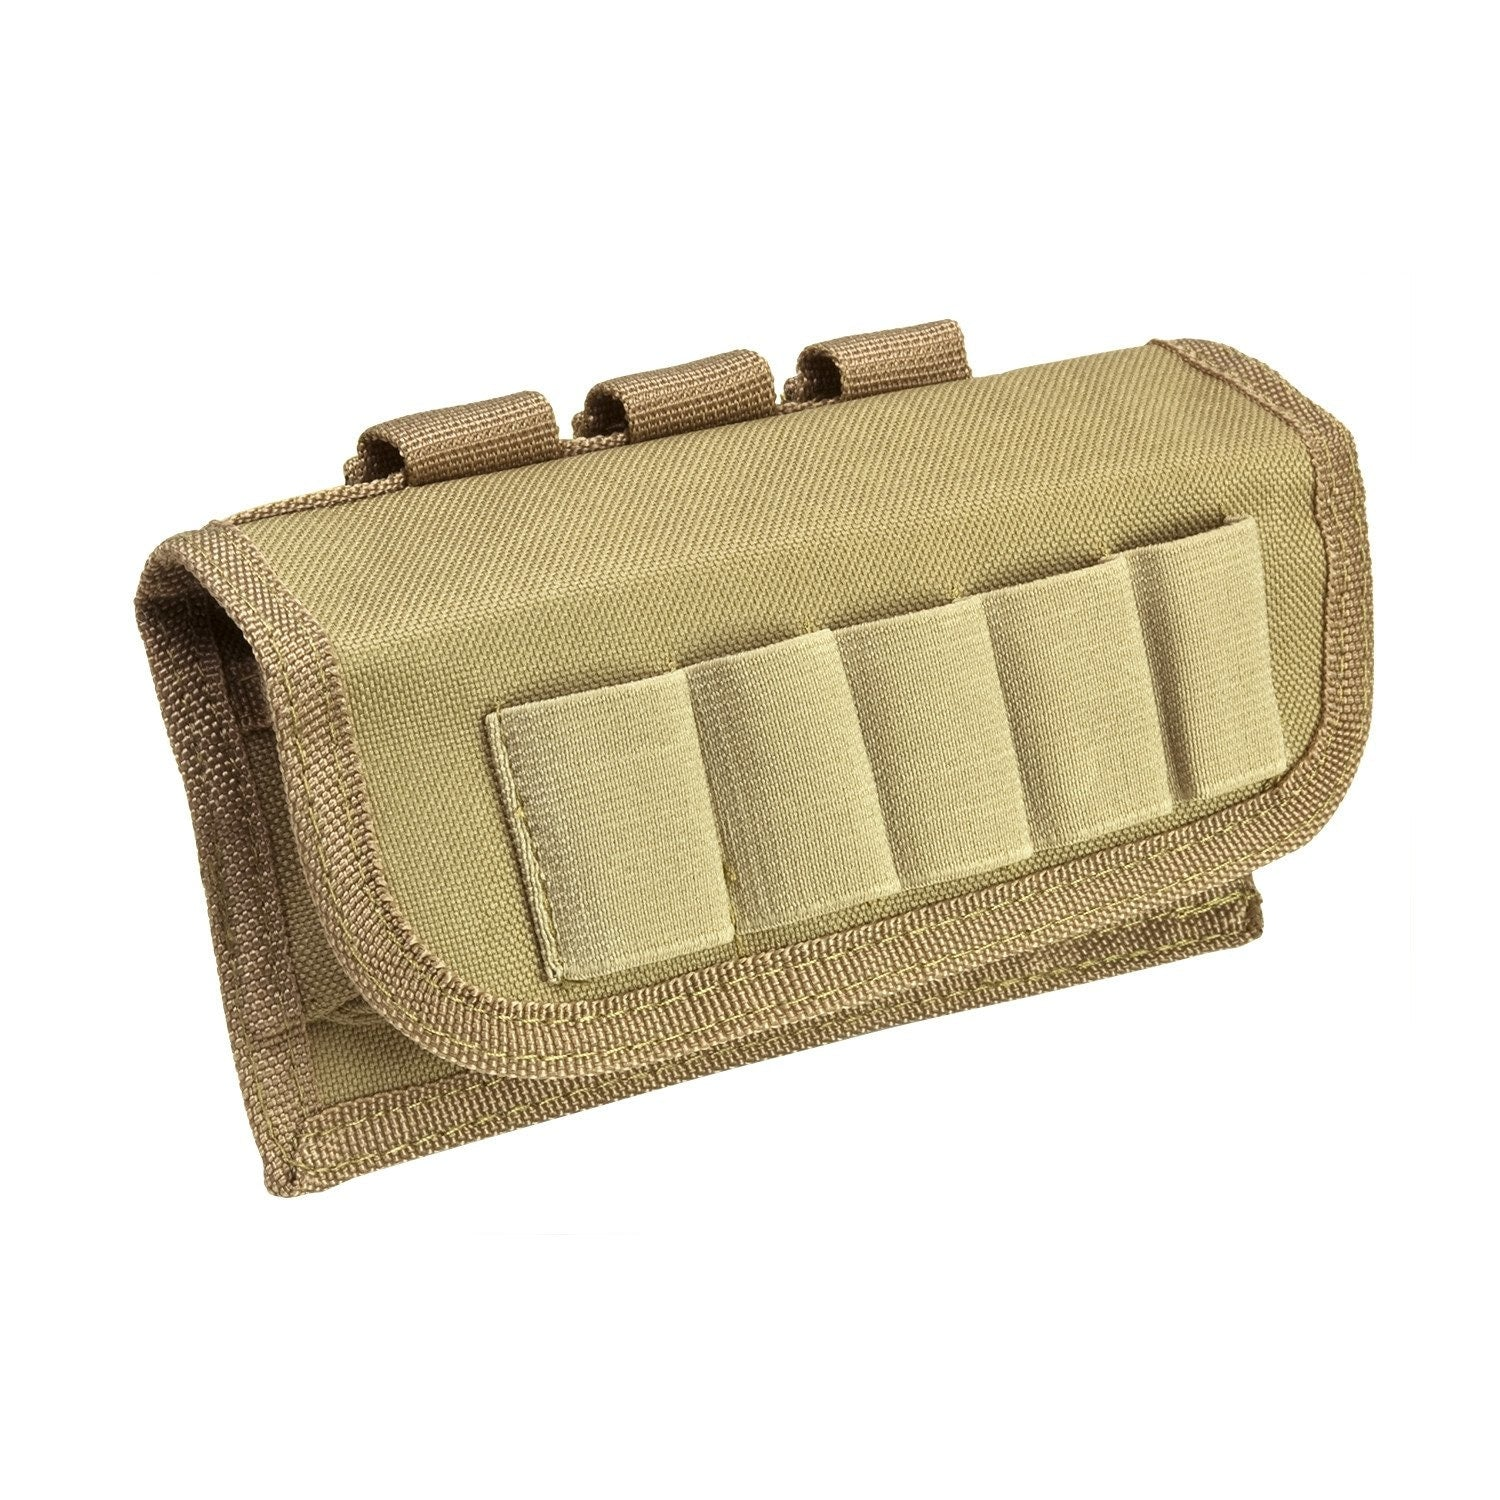 Tactical Shotshell Carrier - Tan - Molle Pouches And Accessories - Vism - Colonel Mustard